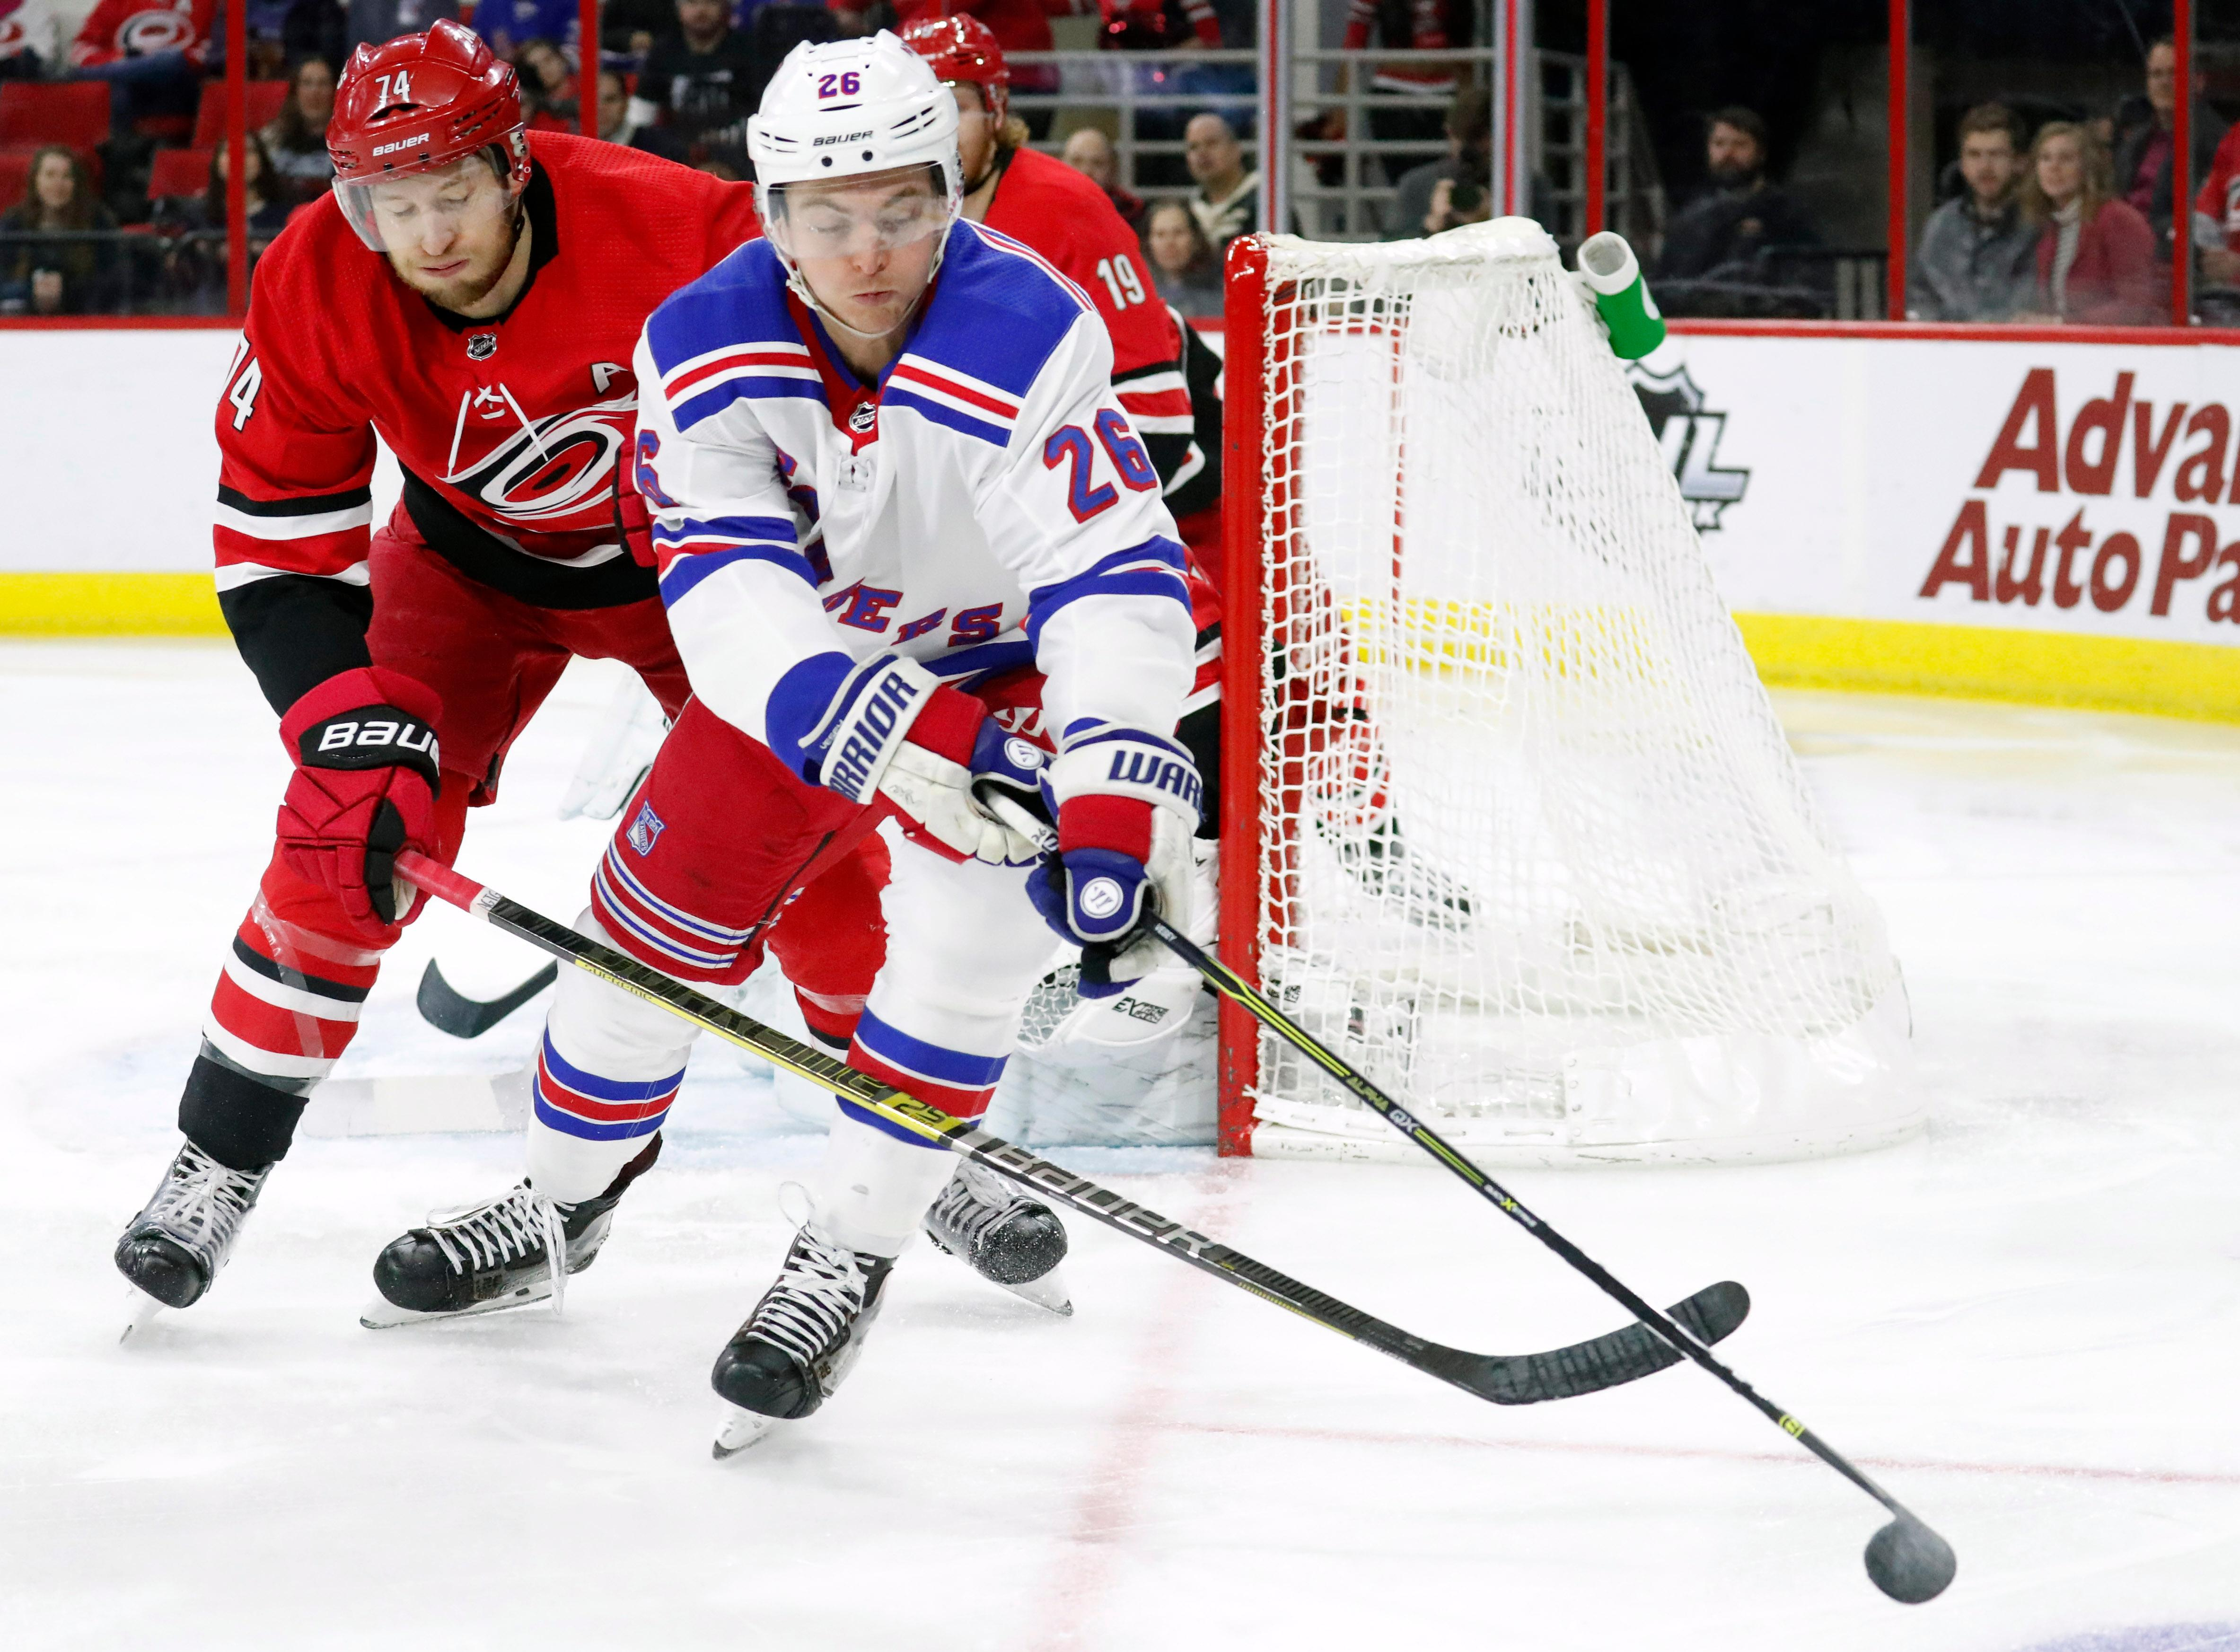 Carolina Hurricanes' Jaccob Slavin, left, and New York Rangers' Jimmy Vesey, right,  vie for the puck during the first period of an NHL hockey game in Raleigh, N.C., Tuesday, Feb. 19, 2019. (AP Photo/Chris Seward)